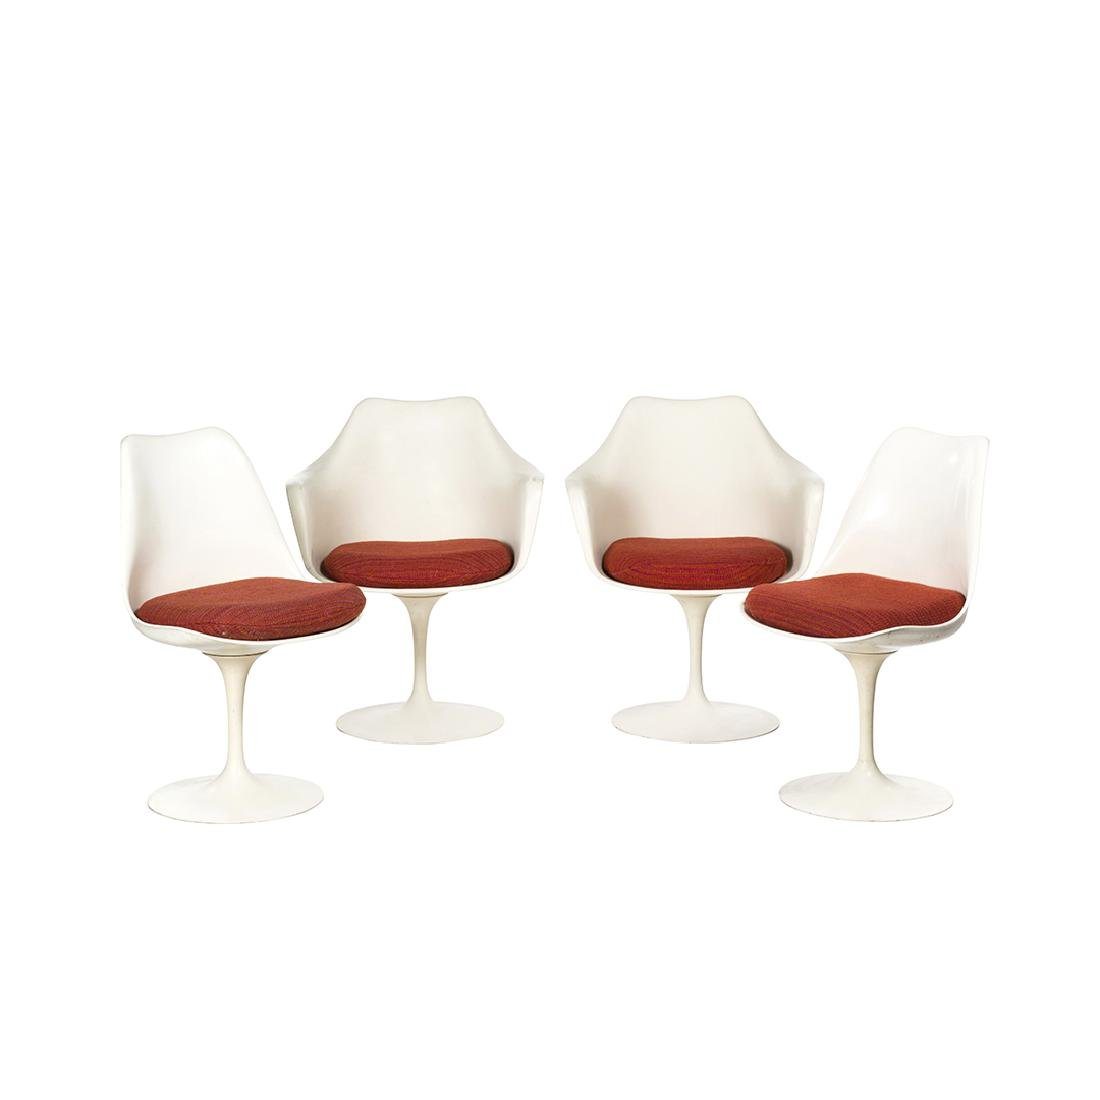 Eero Saarinen Tulip Chairs (4)